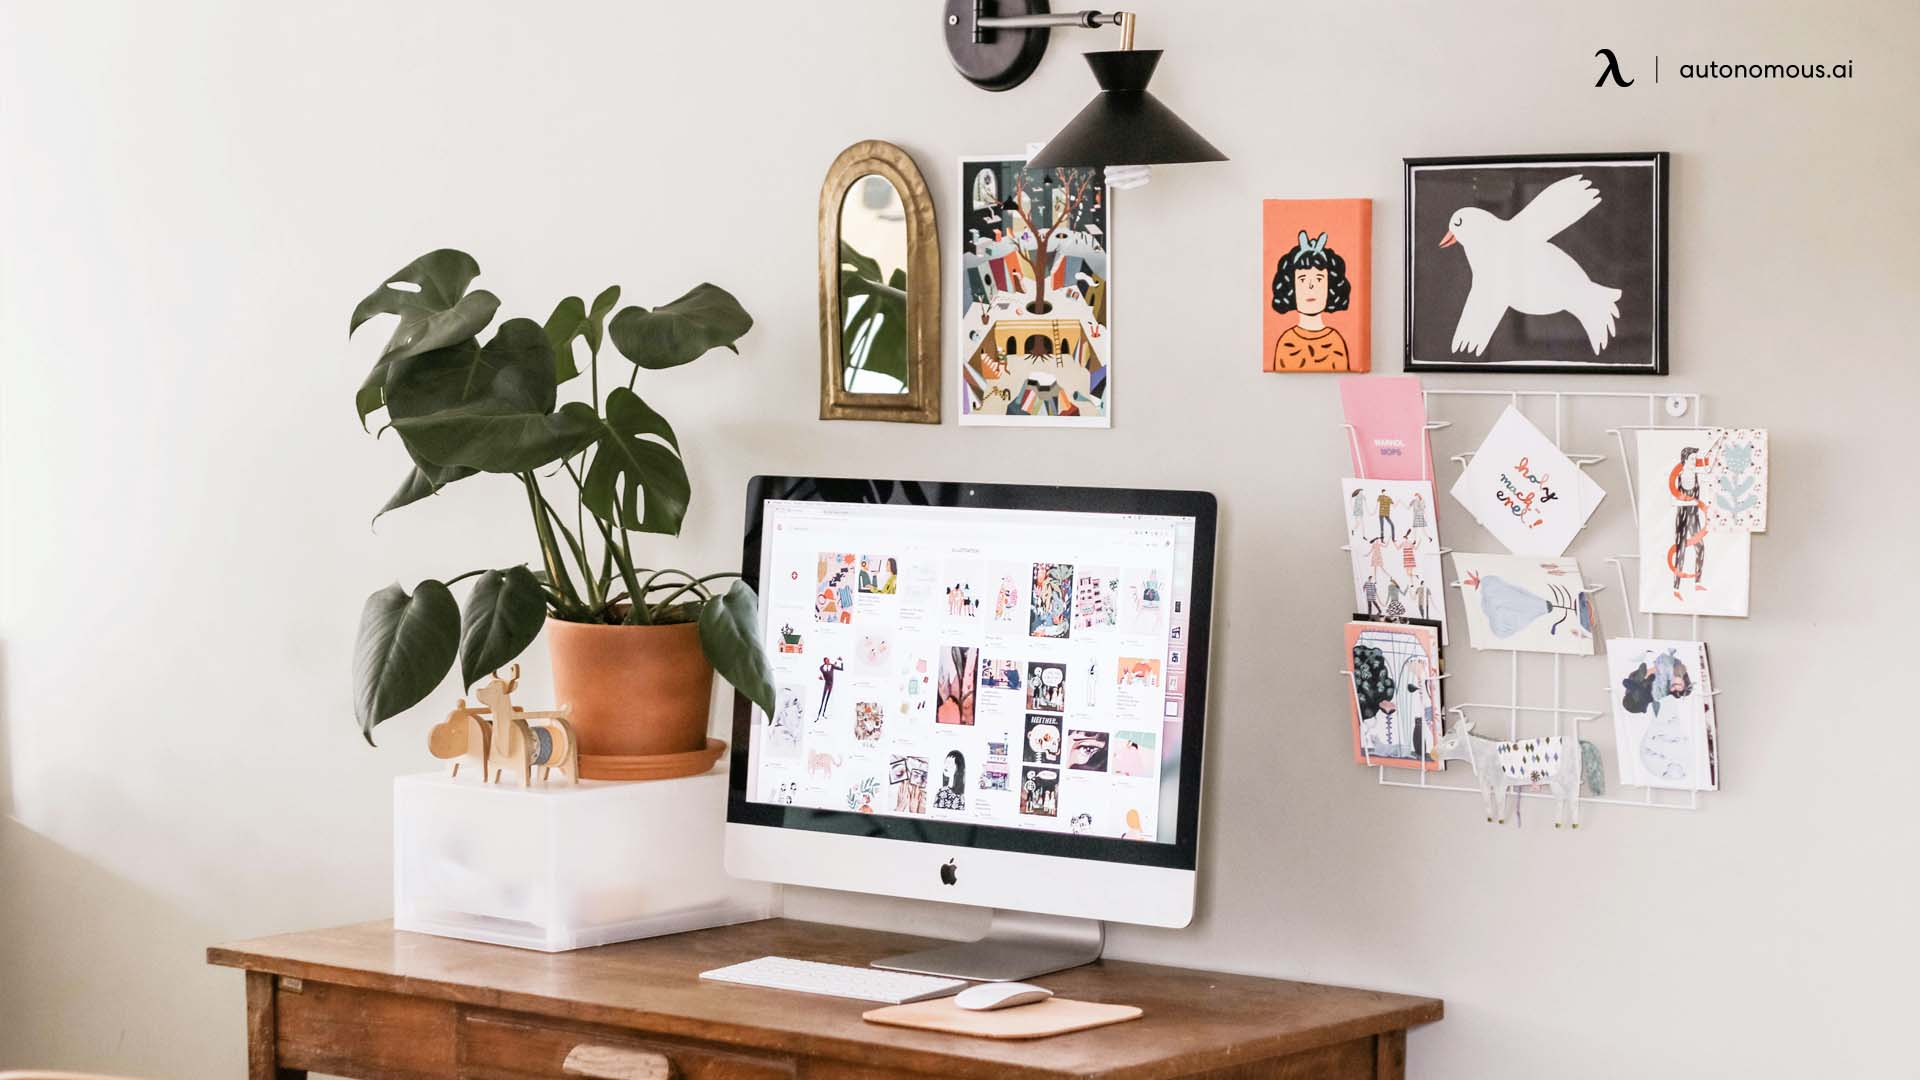 Personalize Your Desk Space